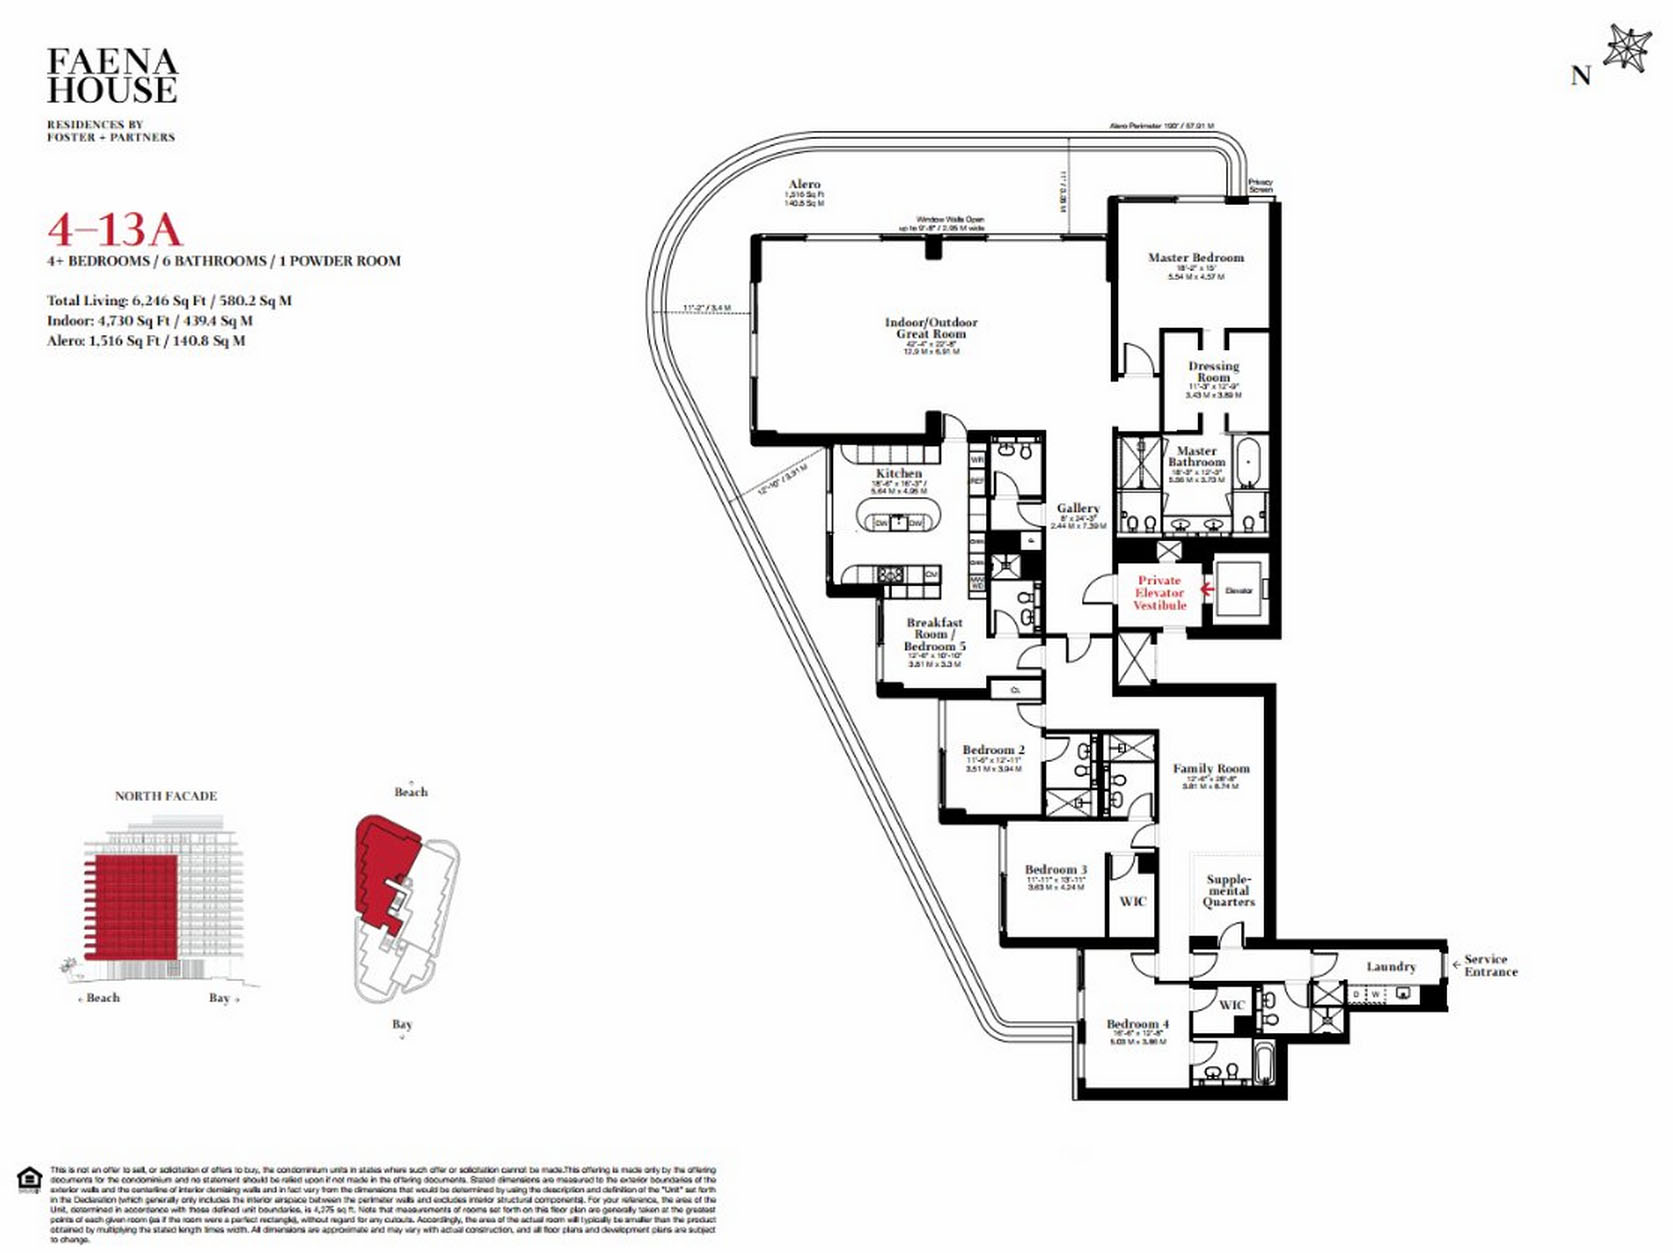 Faena House - Floorplan 2